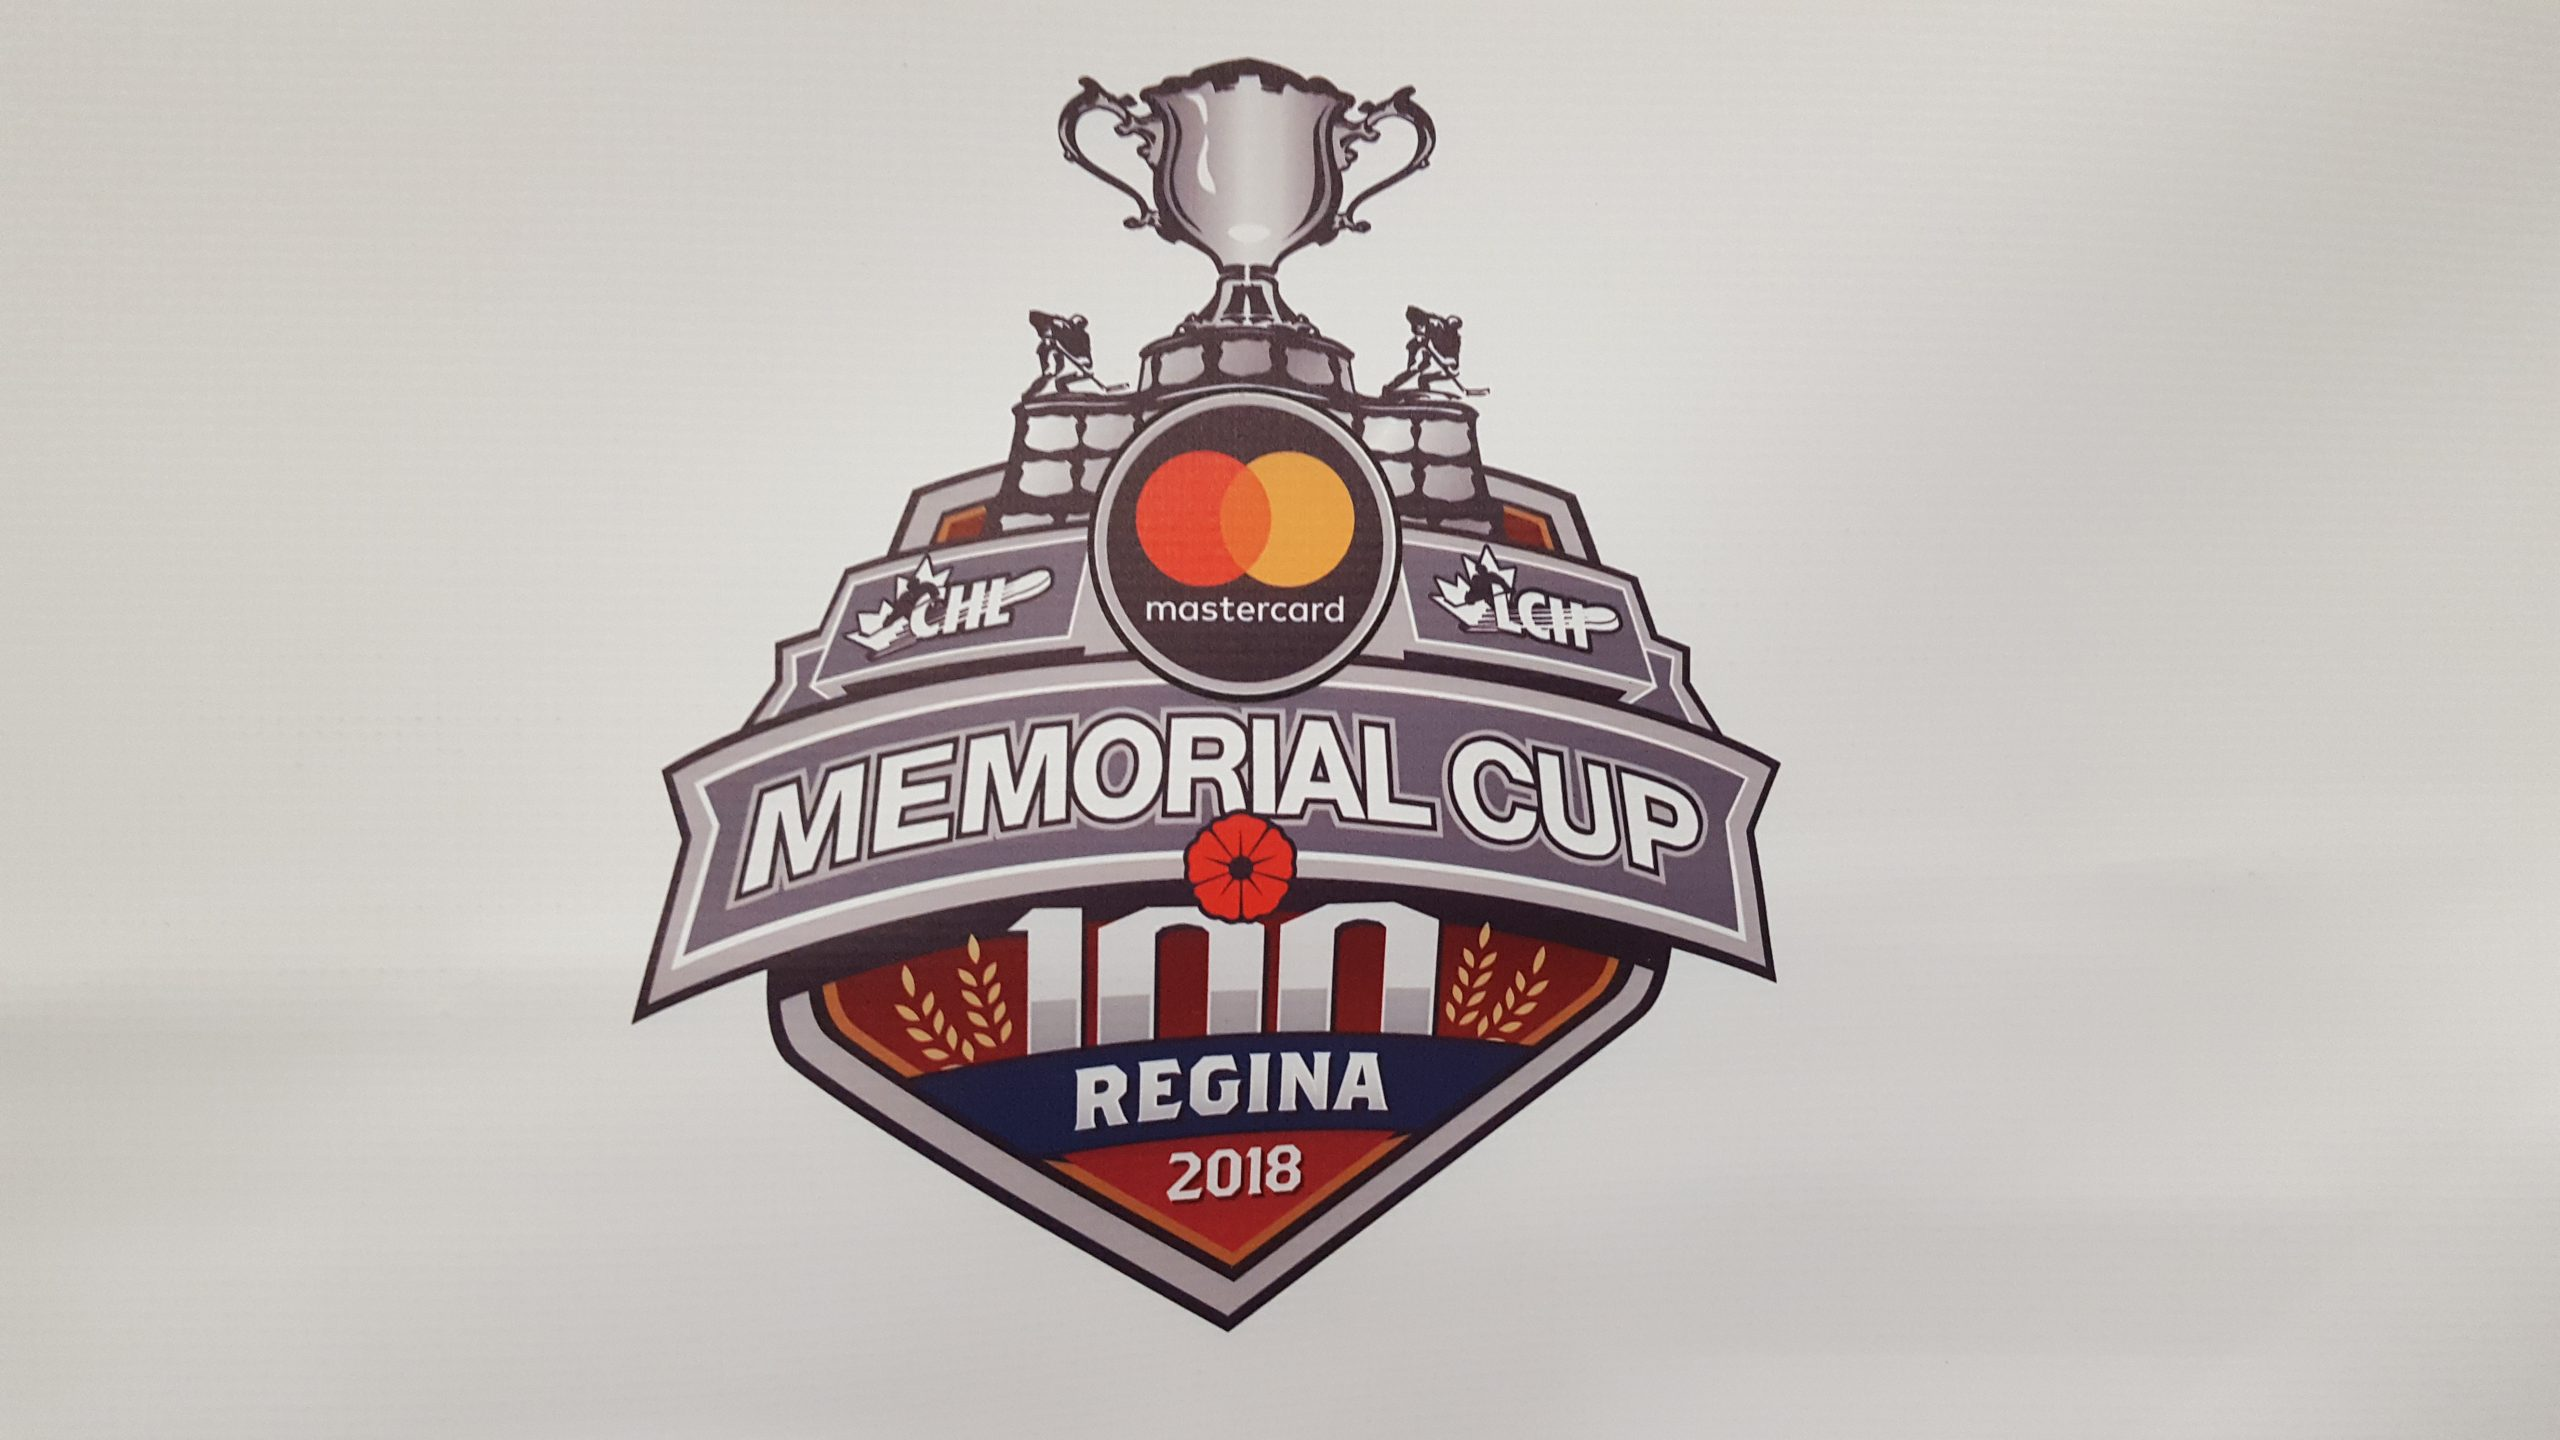 History Favours Hosts Over Quebec League as Regina Plays Titan for Memorial Cup